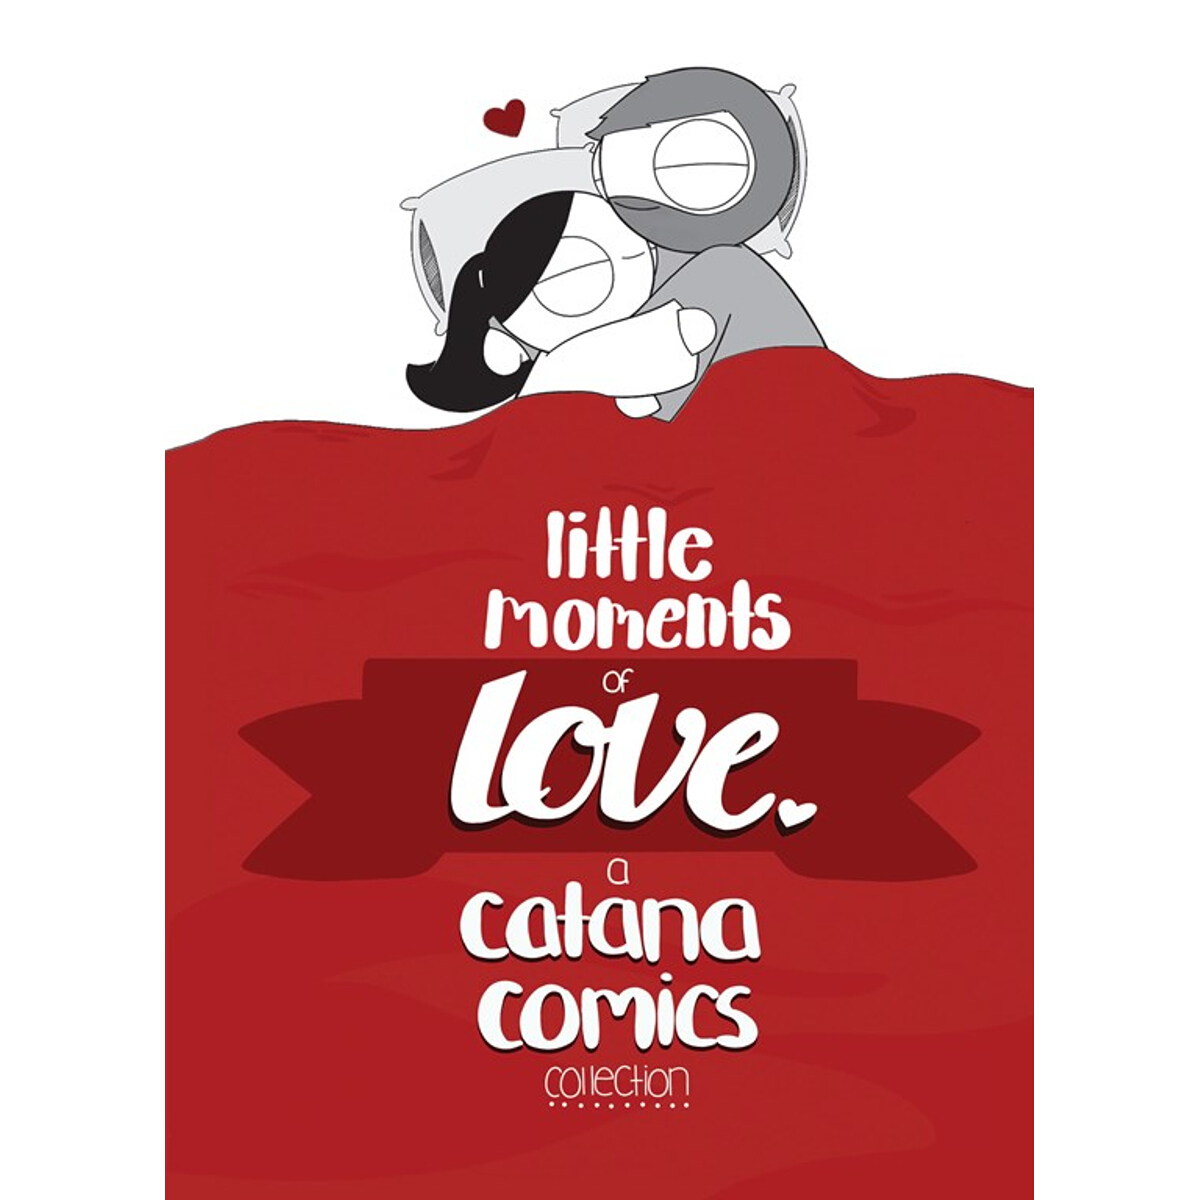 Little-Moments-Of-Love-Catana-Comics-Book-Main-Image